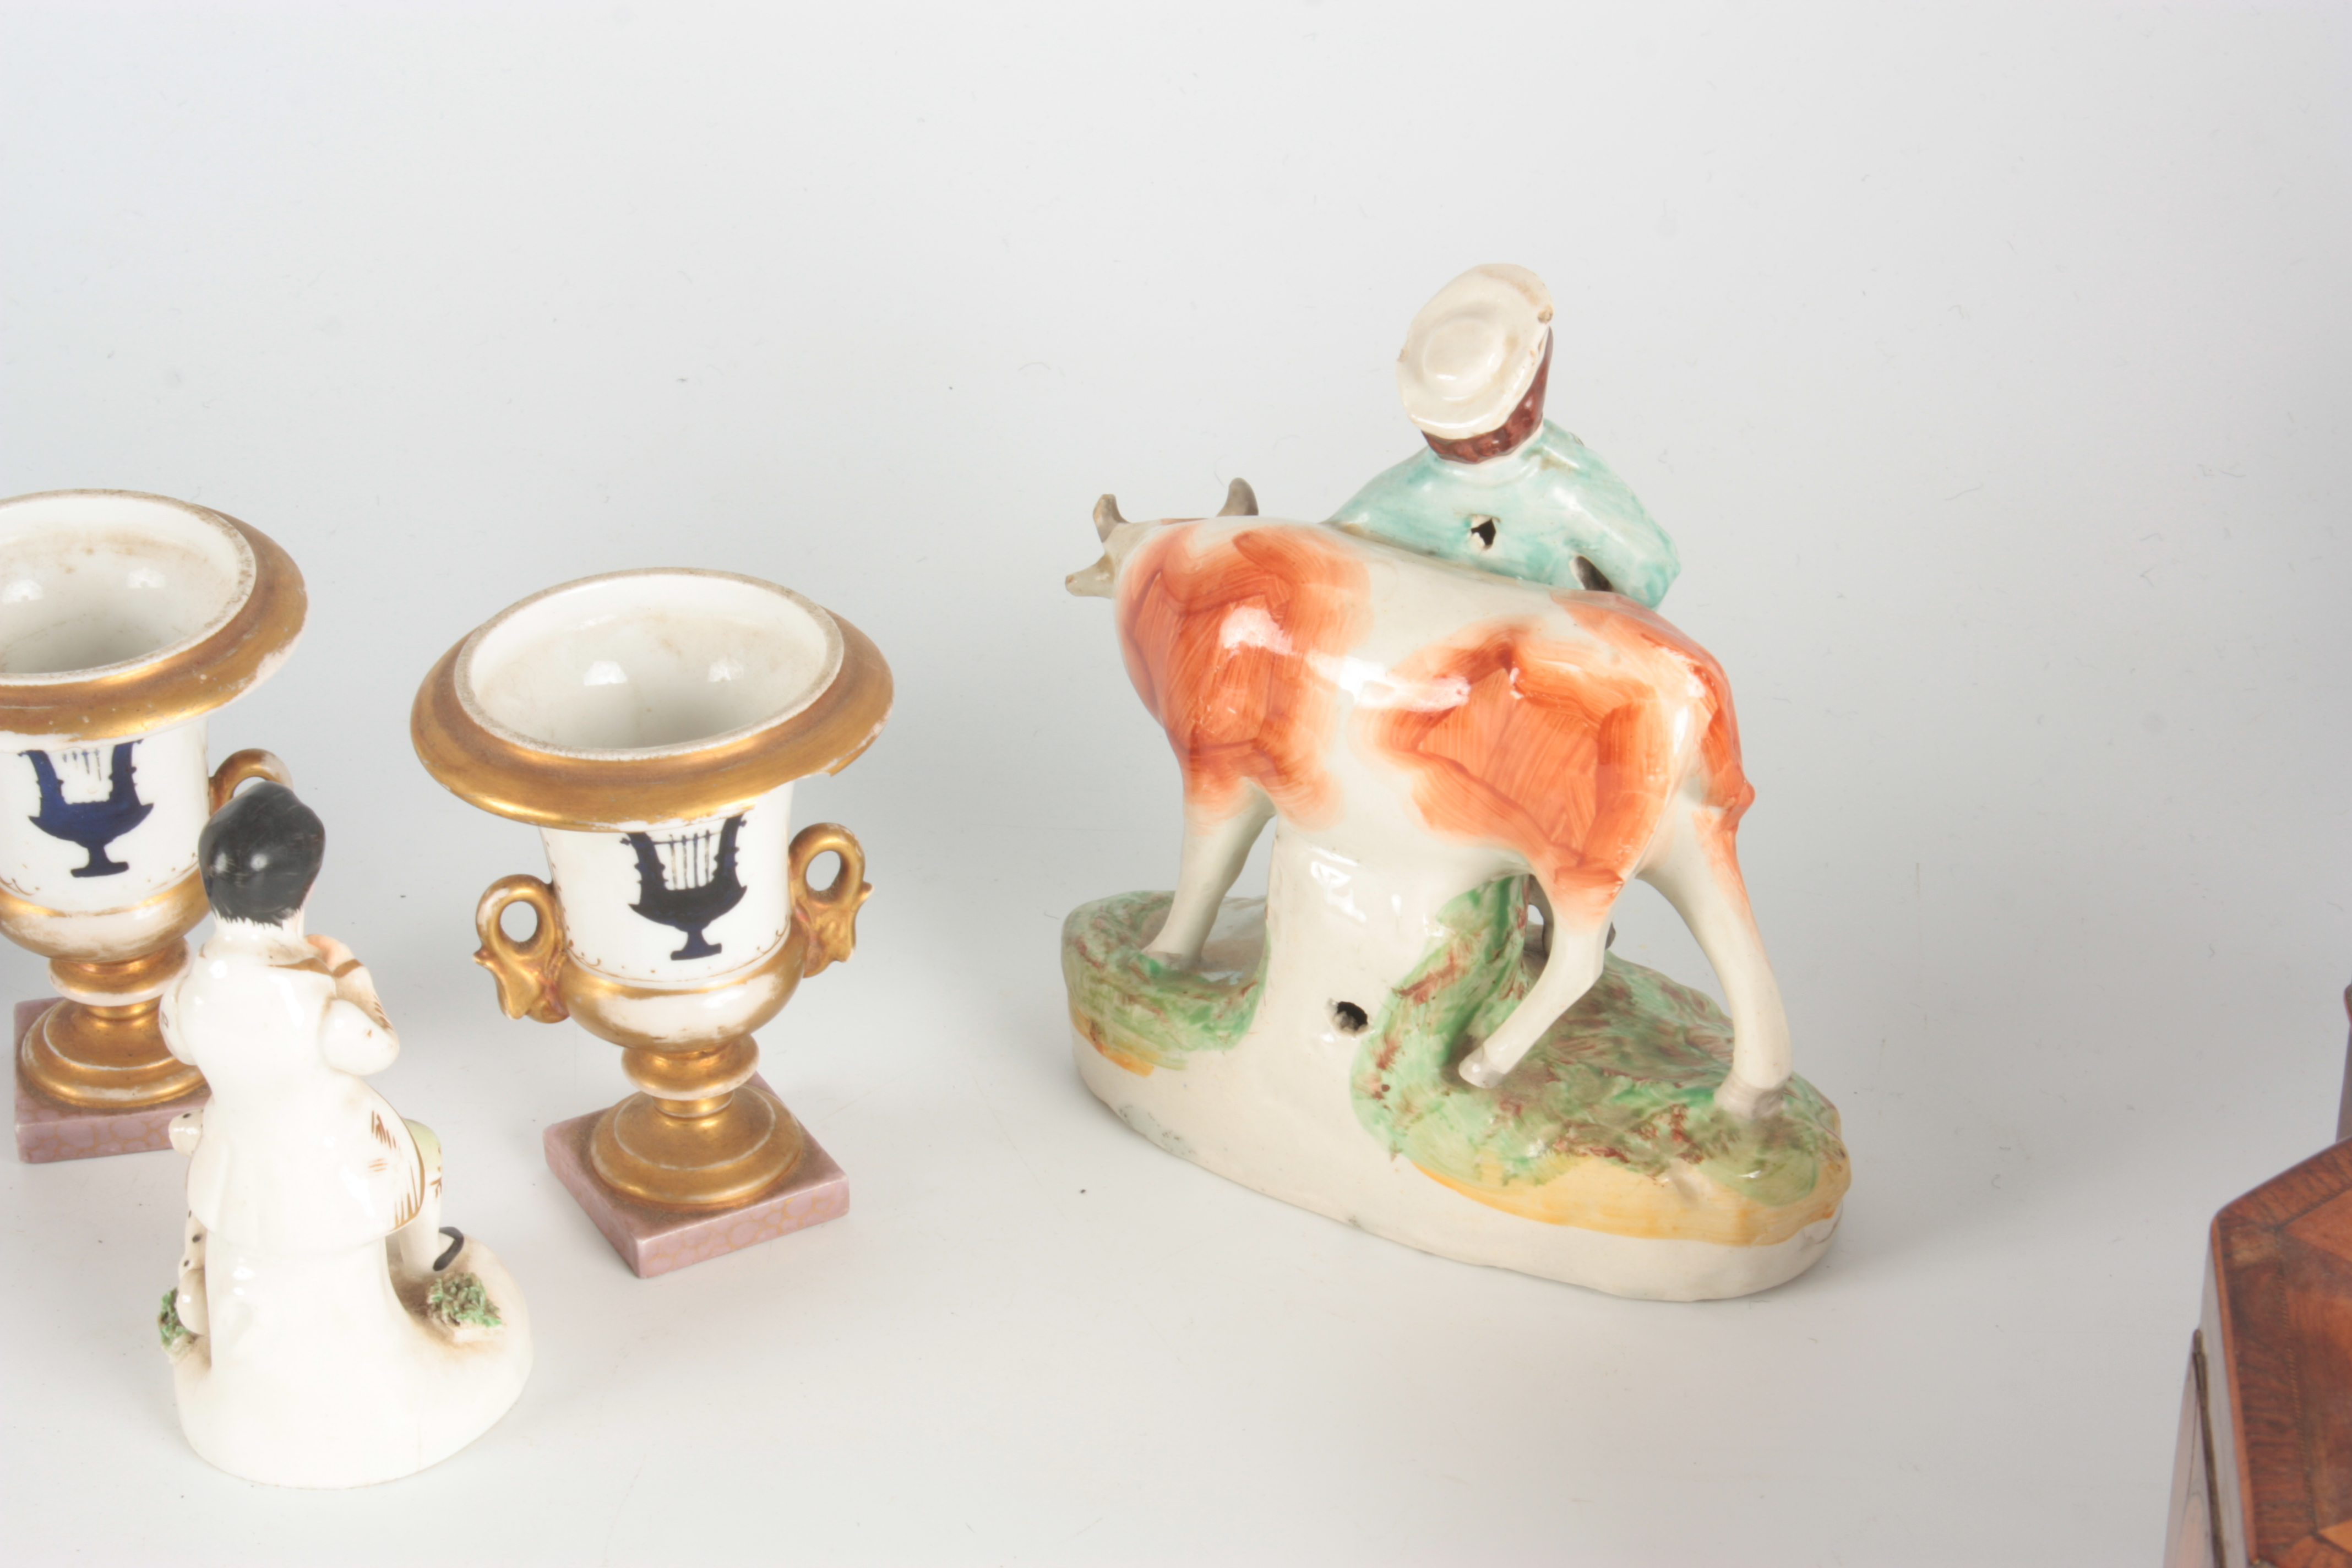 A 19TH CENTURY STAFFORDSHIRE FIGURE depicting a seated piper with dog at foot 12.5cm high A - Image 5 of 6